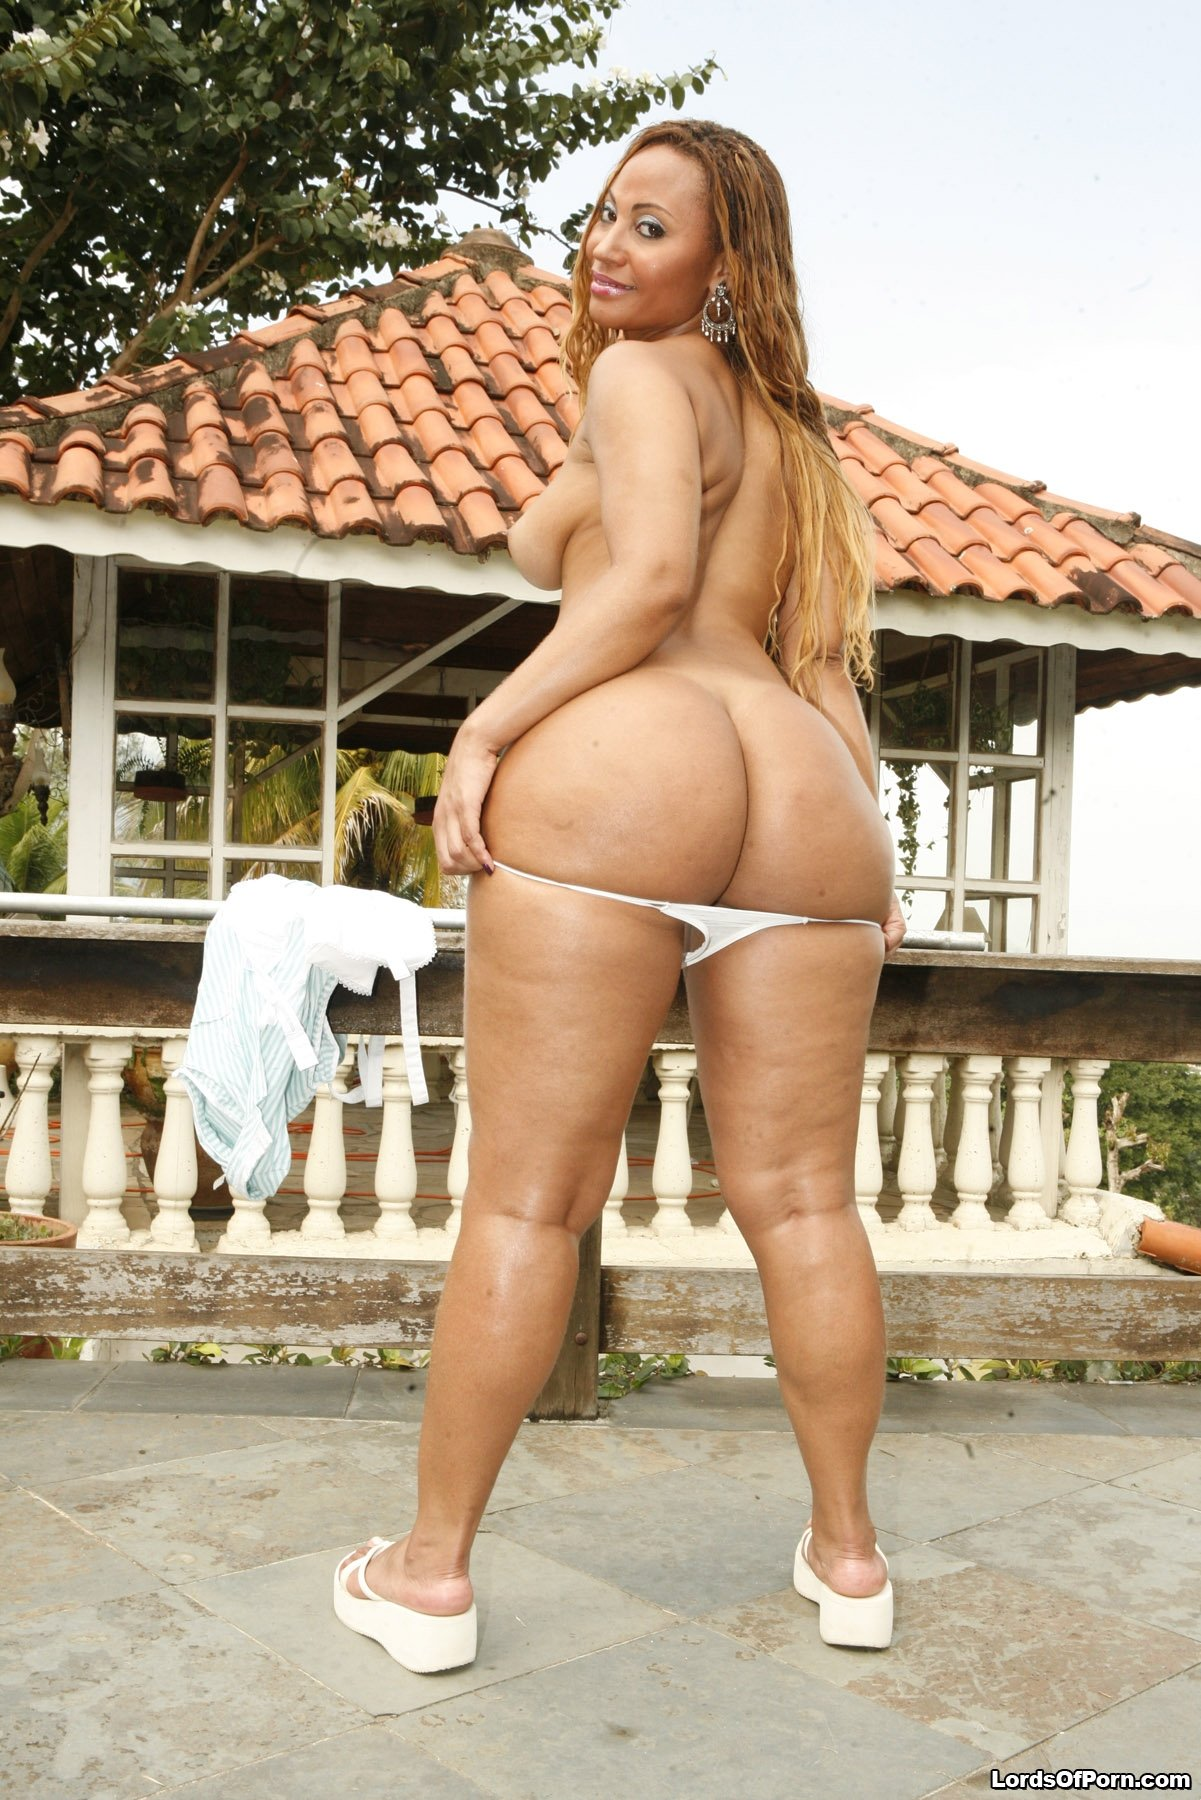 luana was loony as fuck and damn did she have a nice fat ass! this